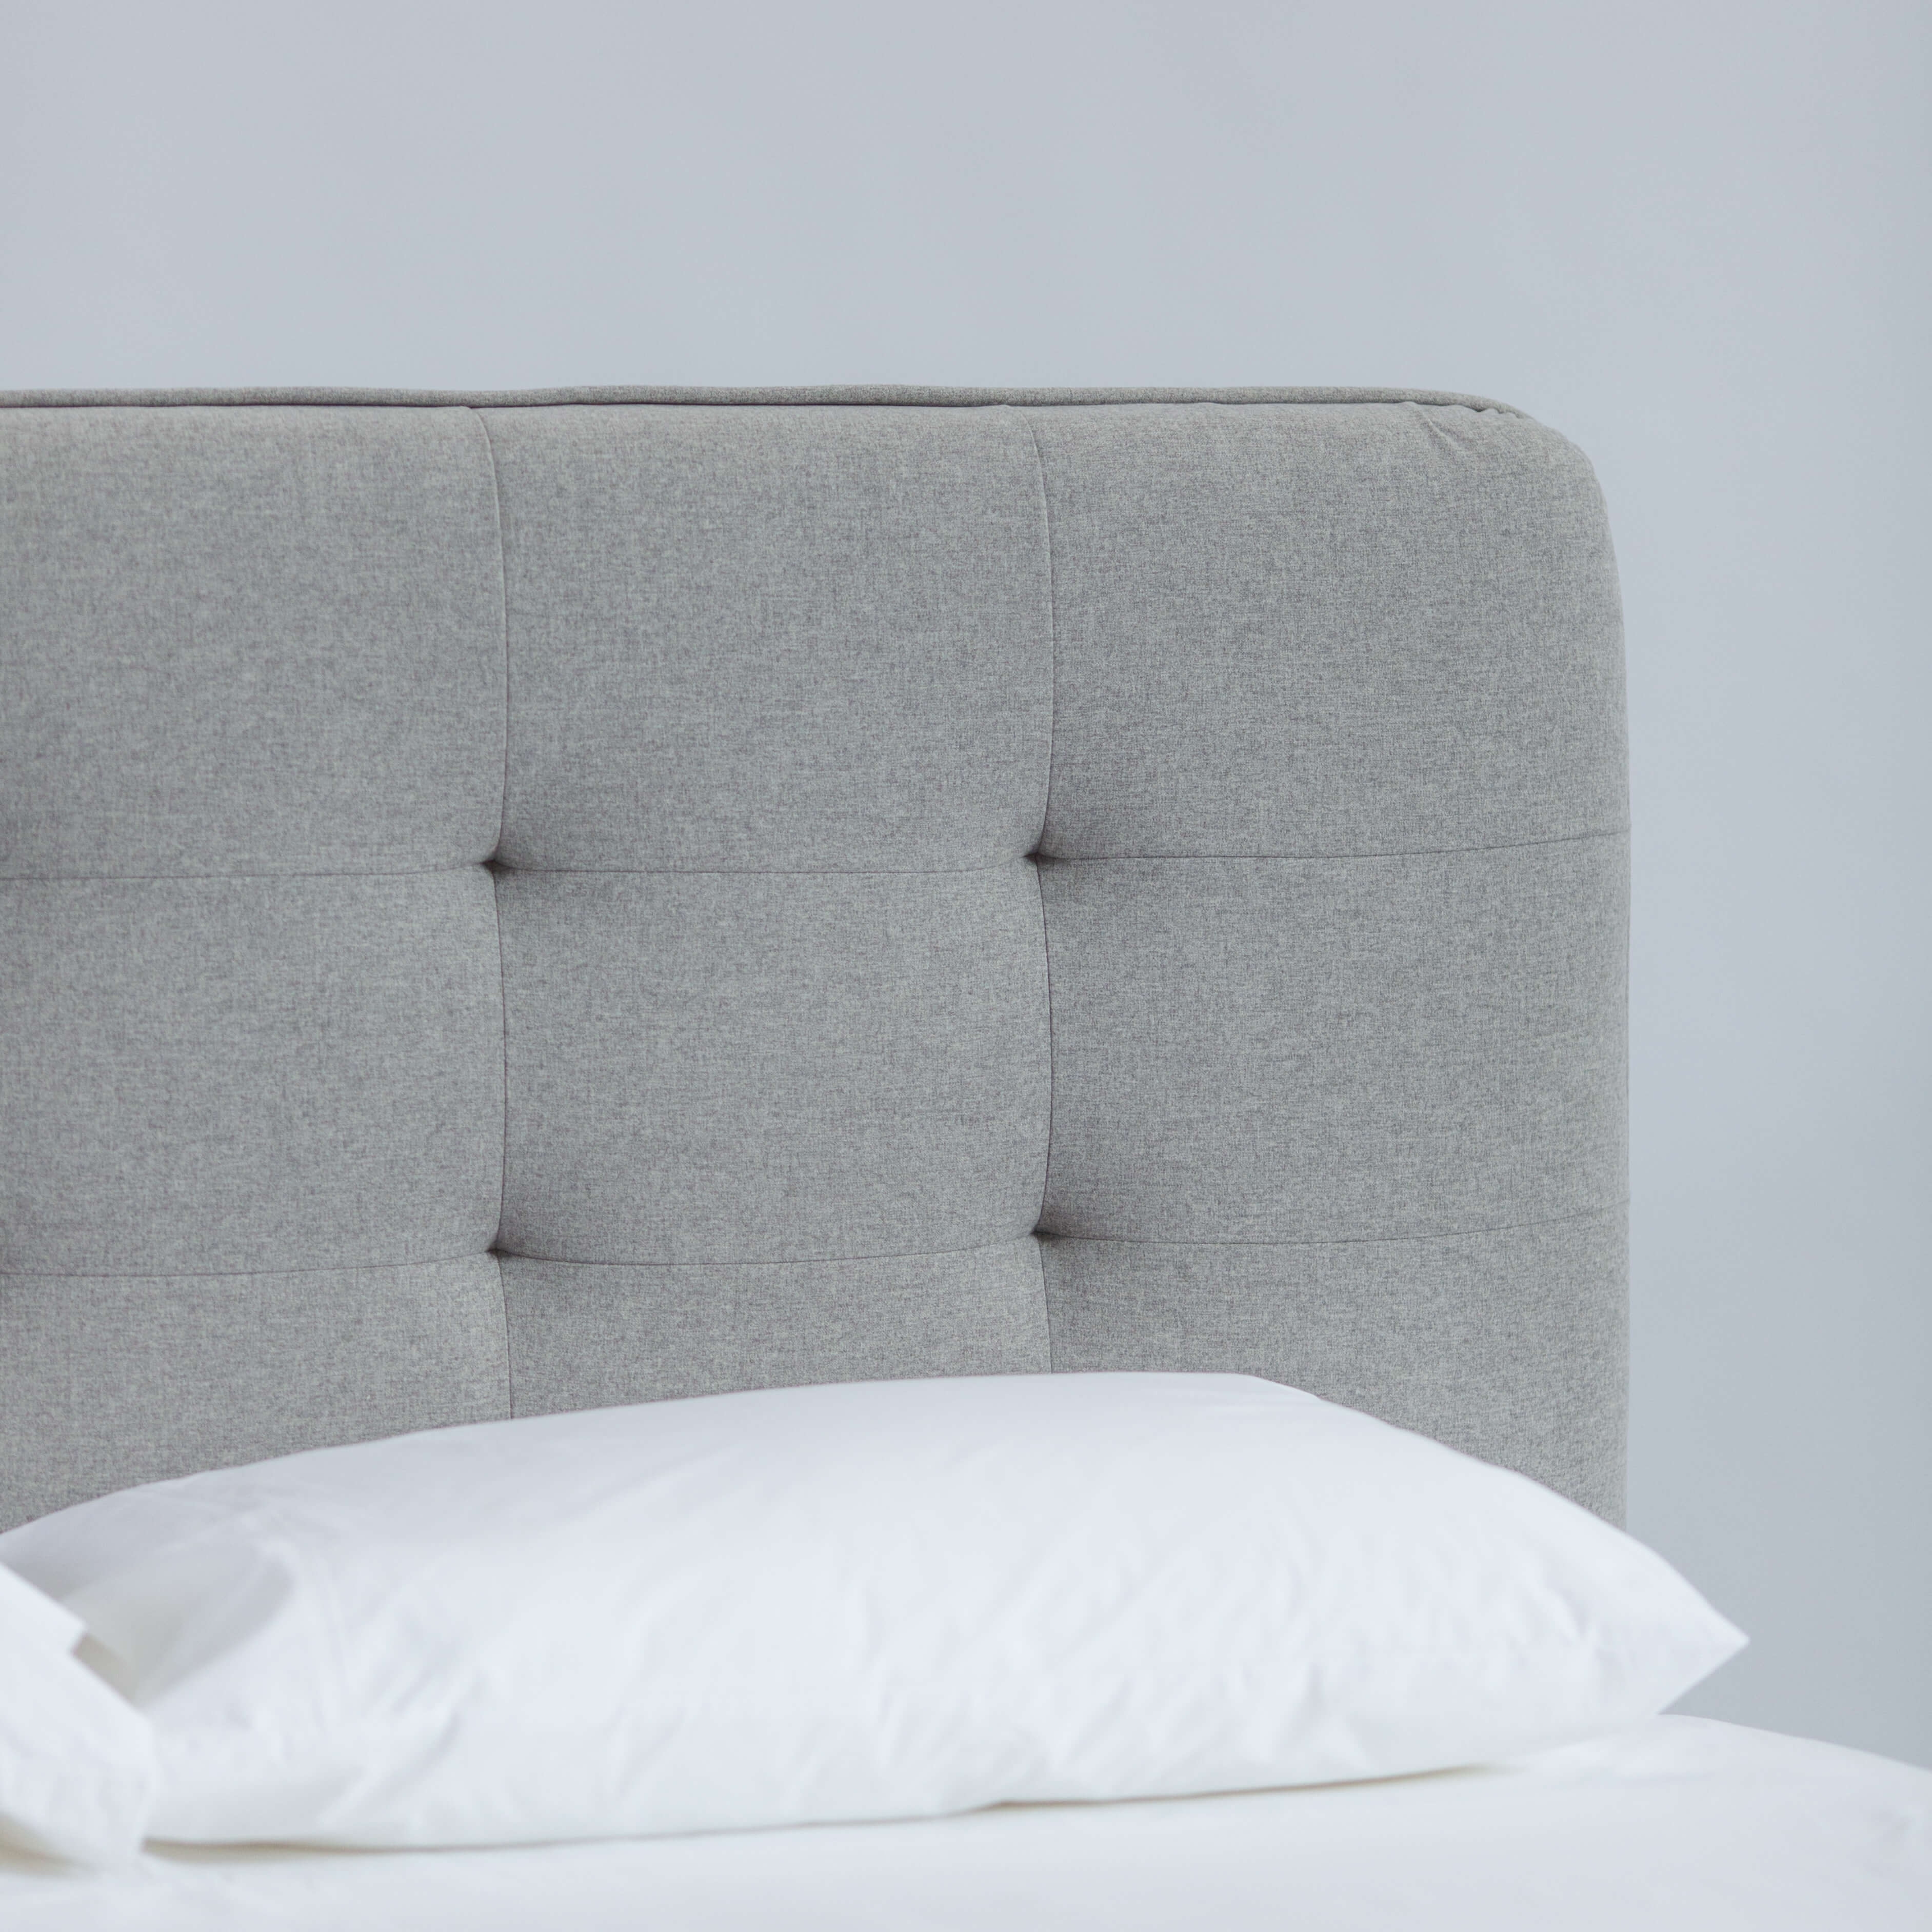 King Size Bed With Tufted Fabric Bedhead - Jaxon - Grey within Jaxon Sideboards (Image 18 of 30)